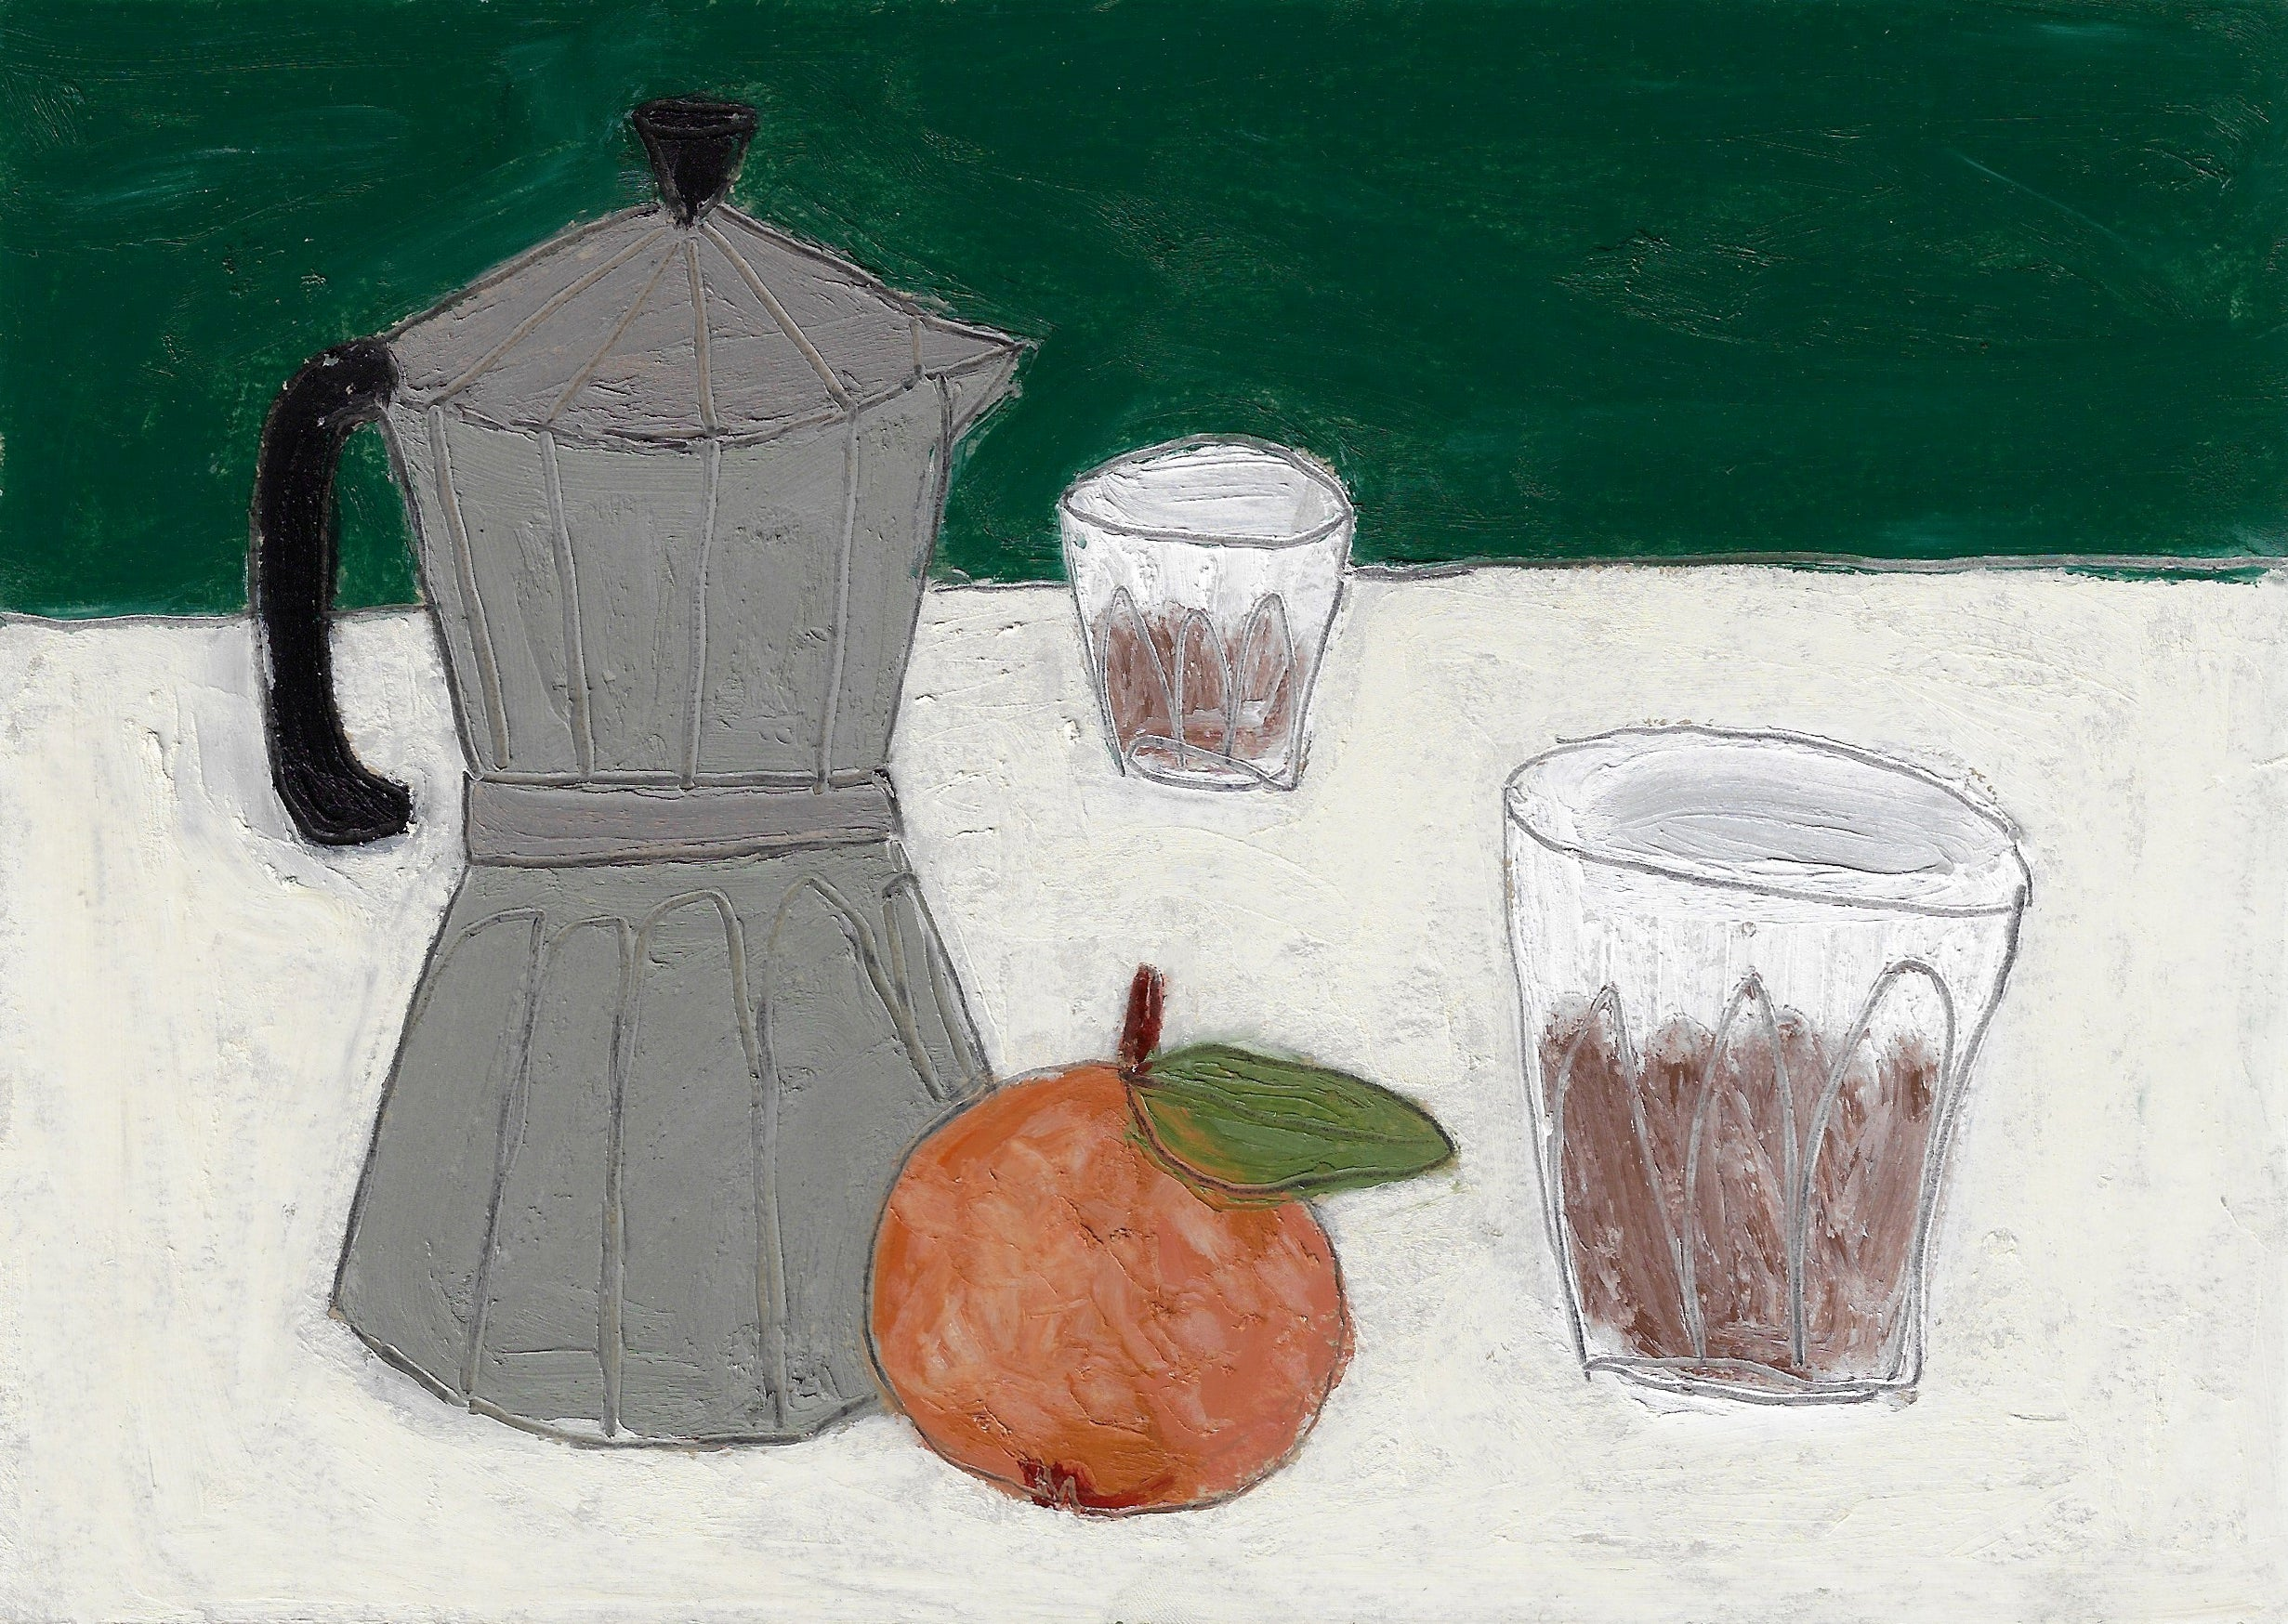 Painting of a stovetop espresso maker with oranges and two espresso glasses. Painting by Lottie Hampson.